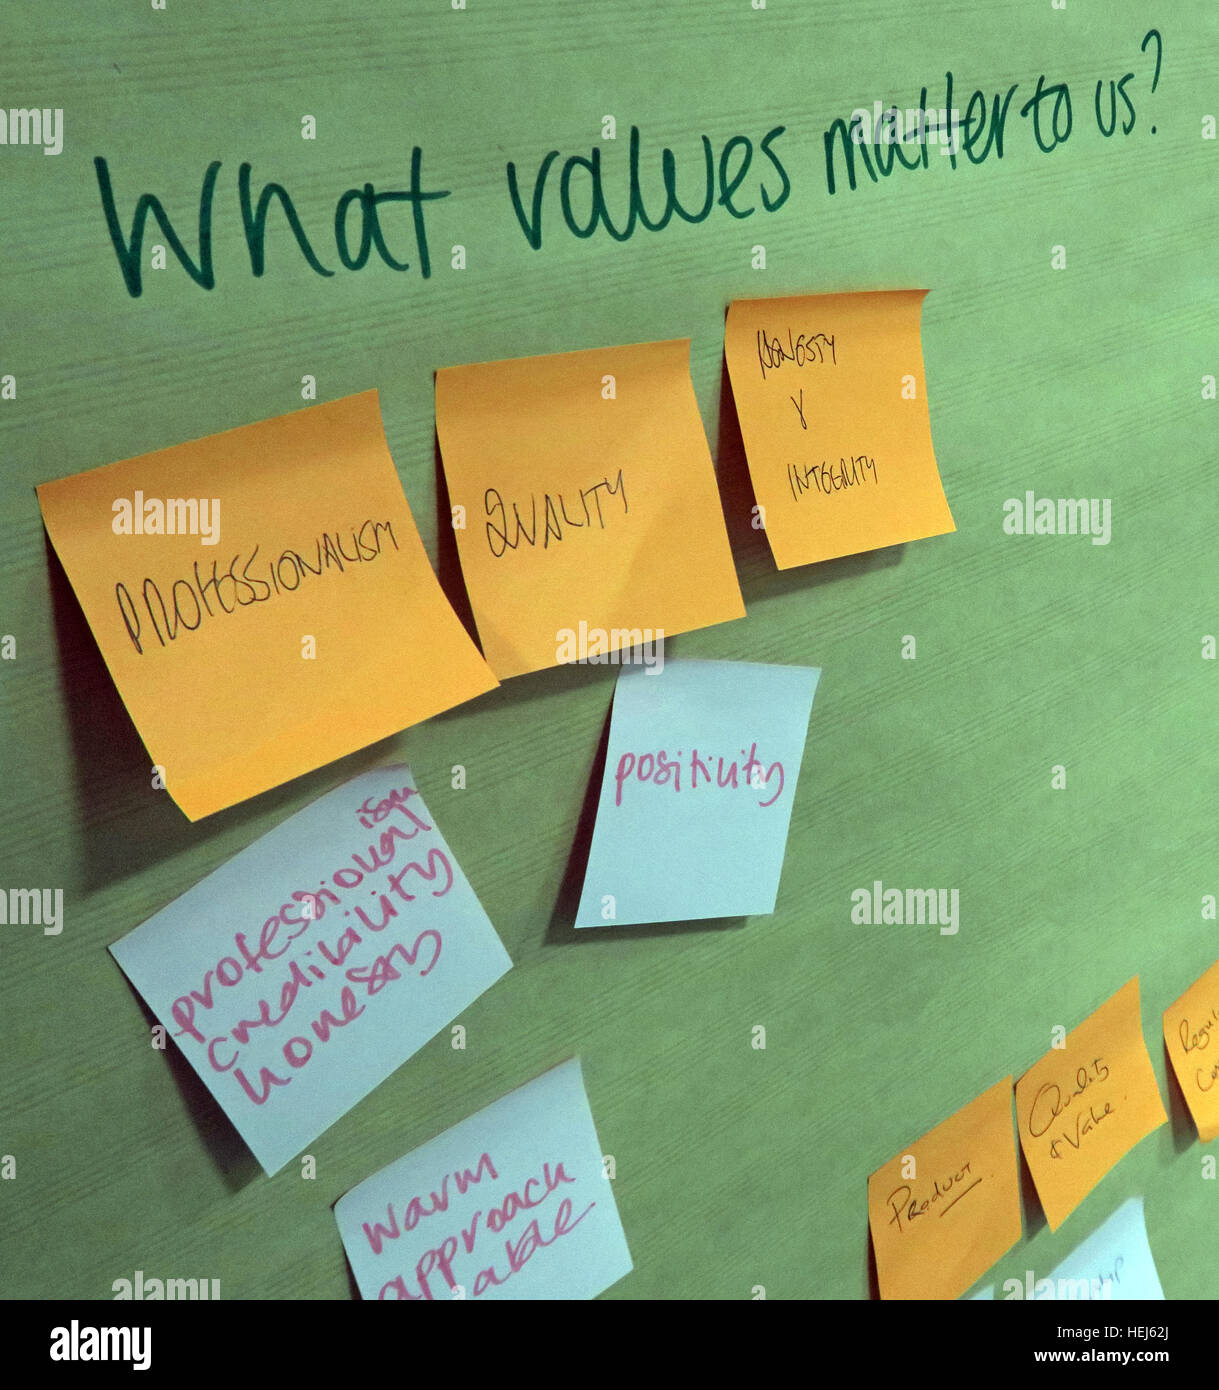 Strategy and Values brainstorming office training team building session - What values matter to us? - Stock Image